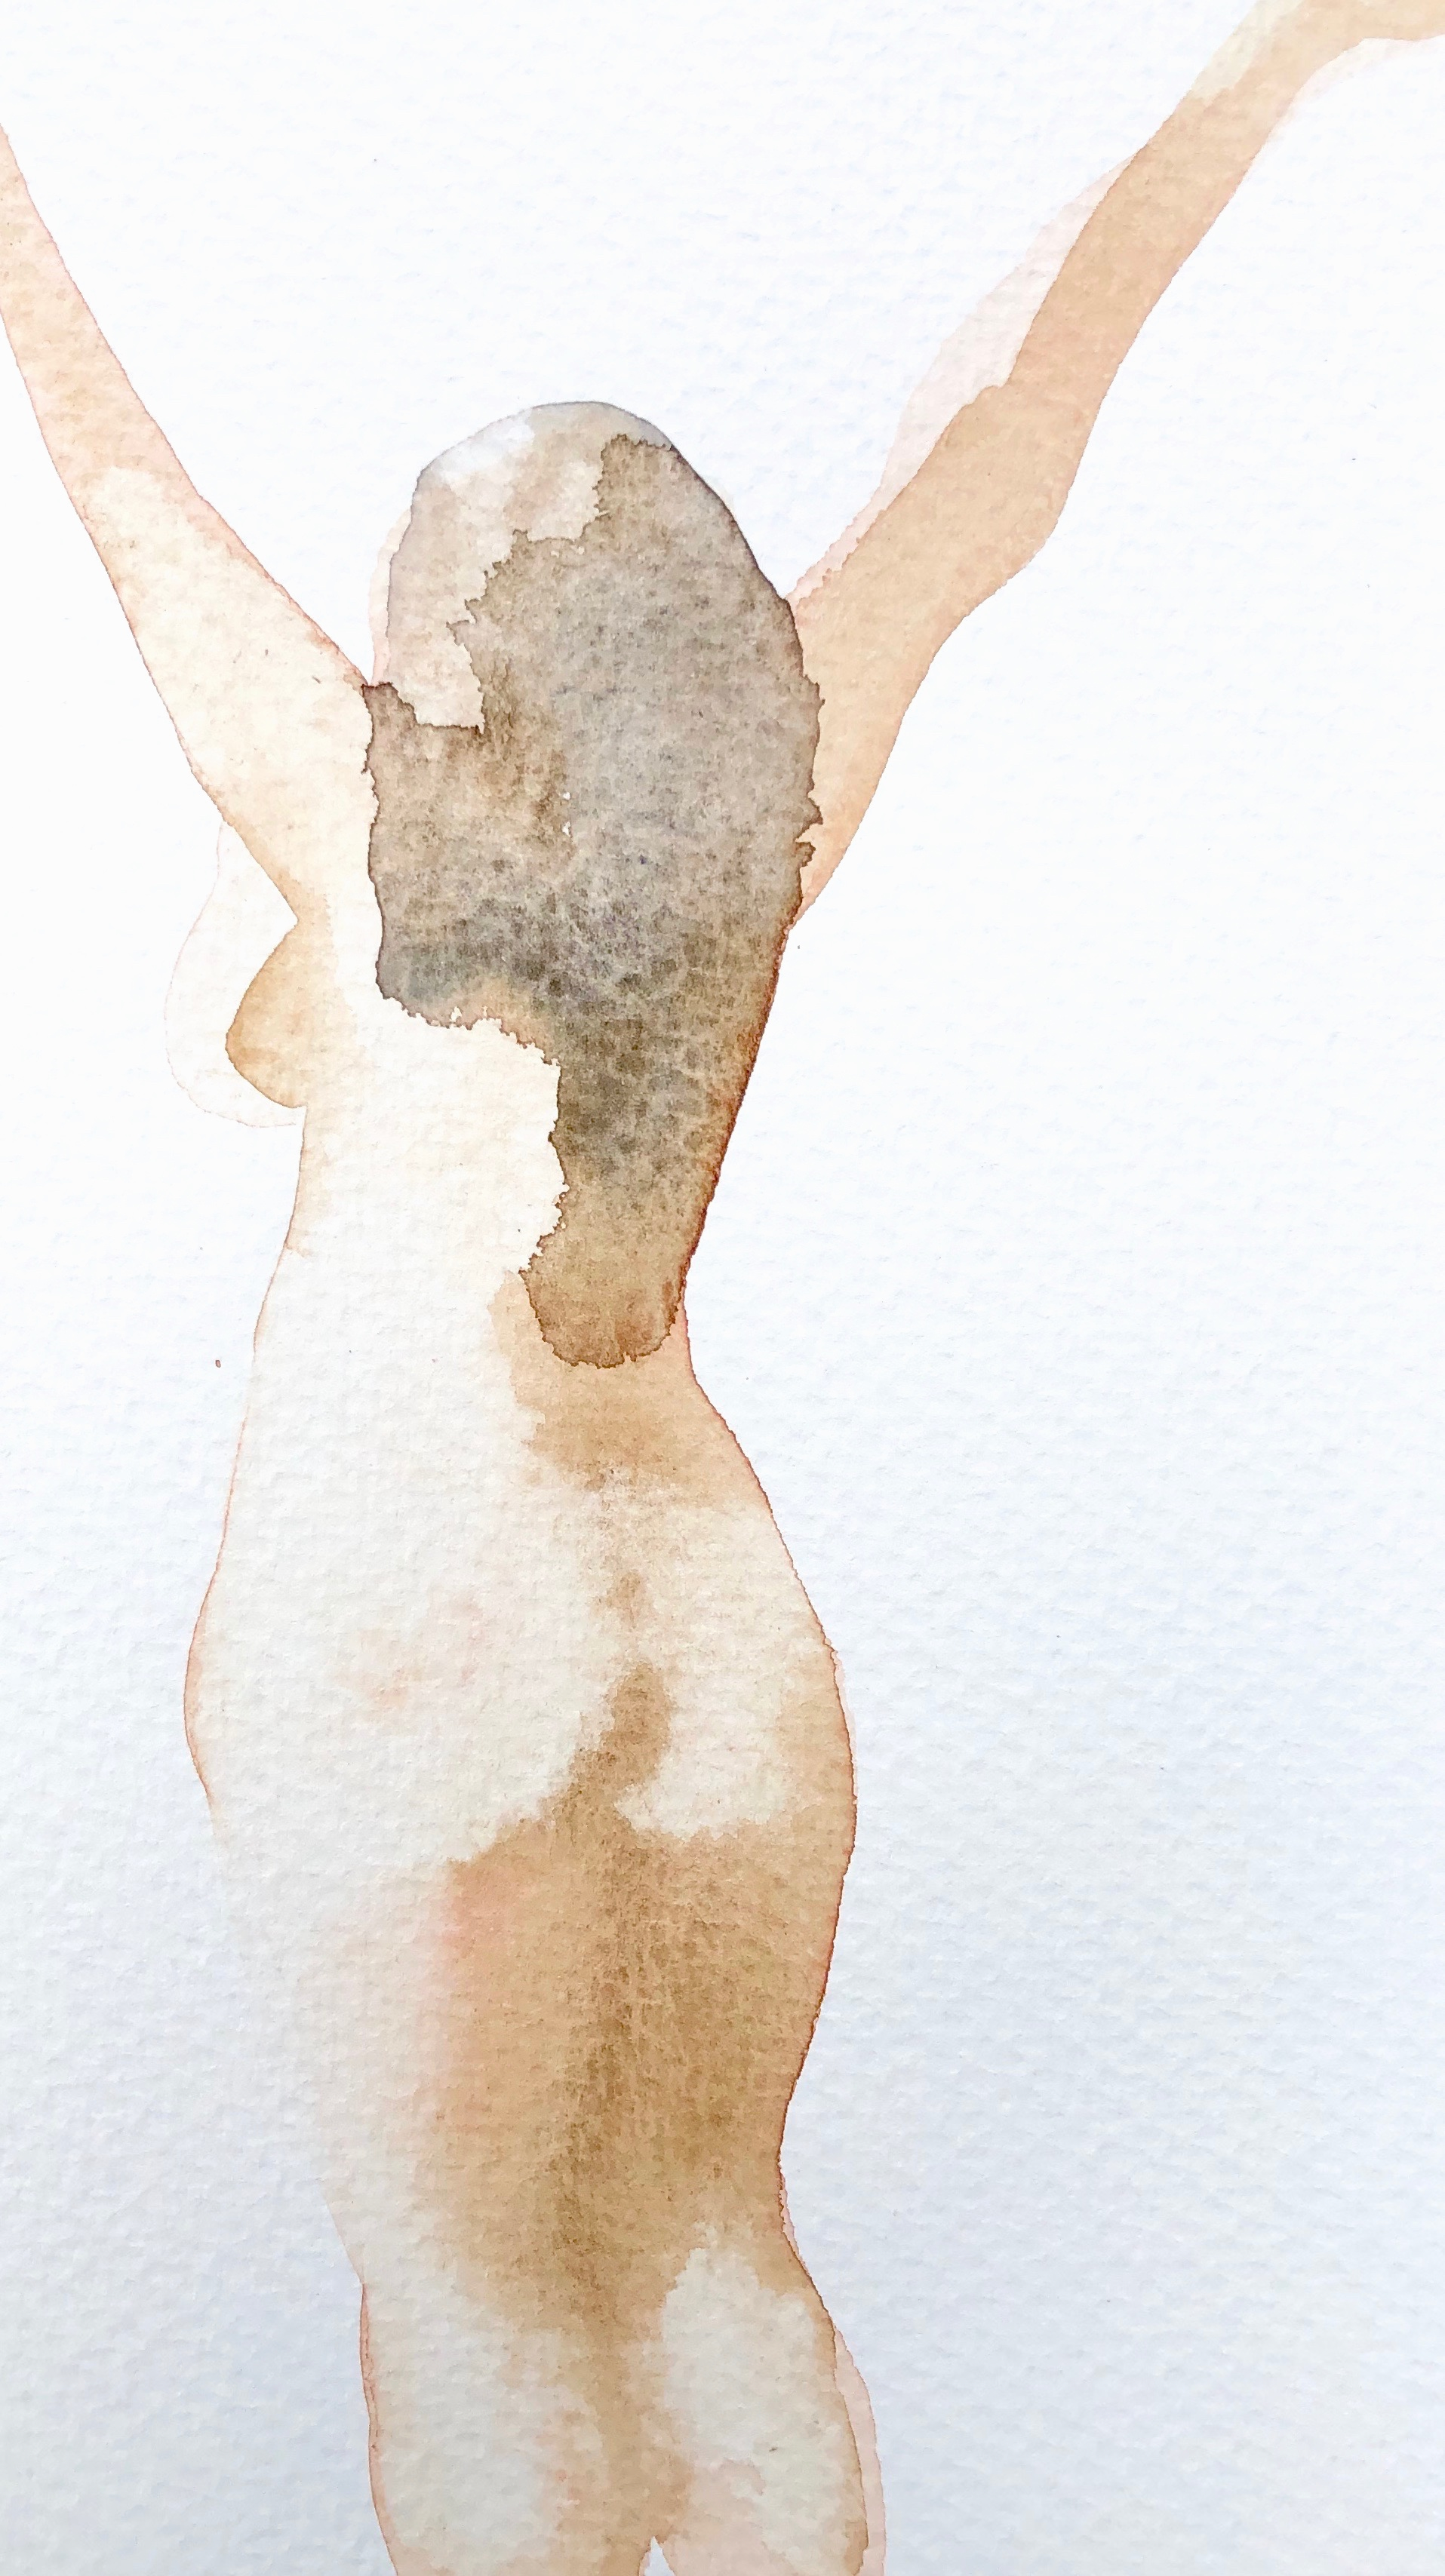 Joy 9  Watercolour on paper  21 x 12cm  SOLD   emponsonby@gmail.com